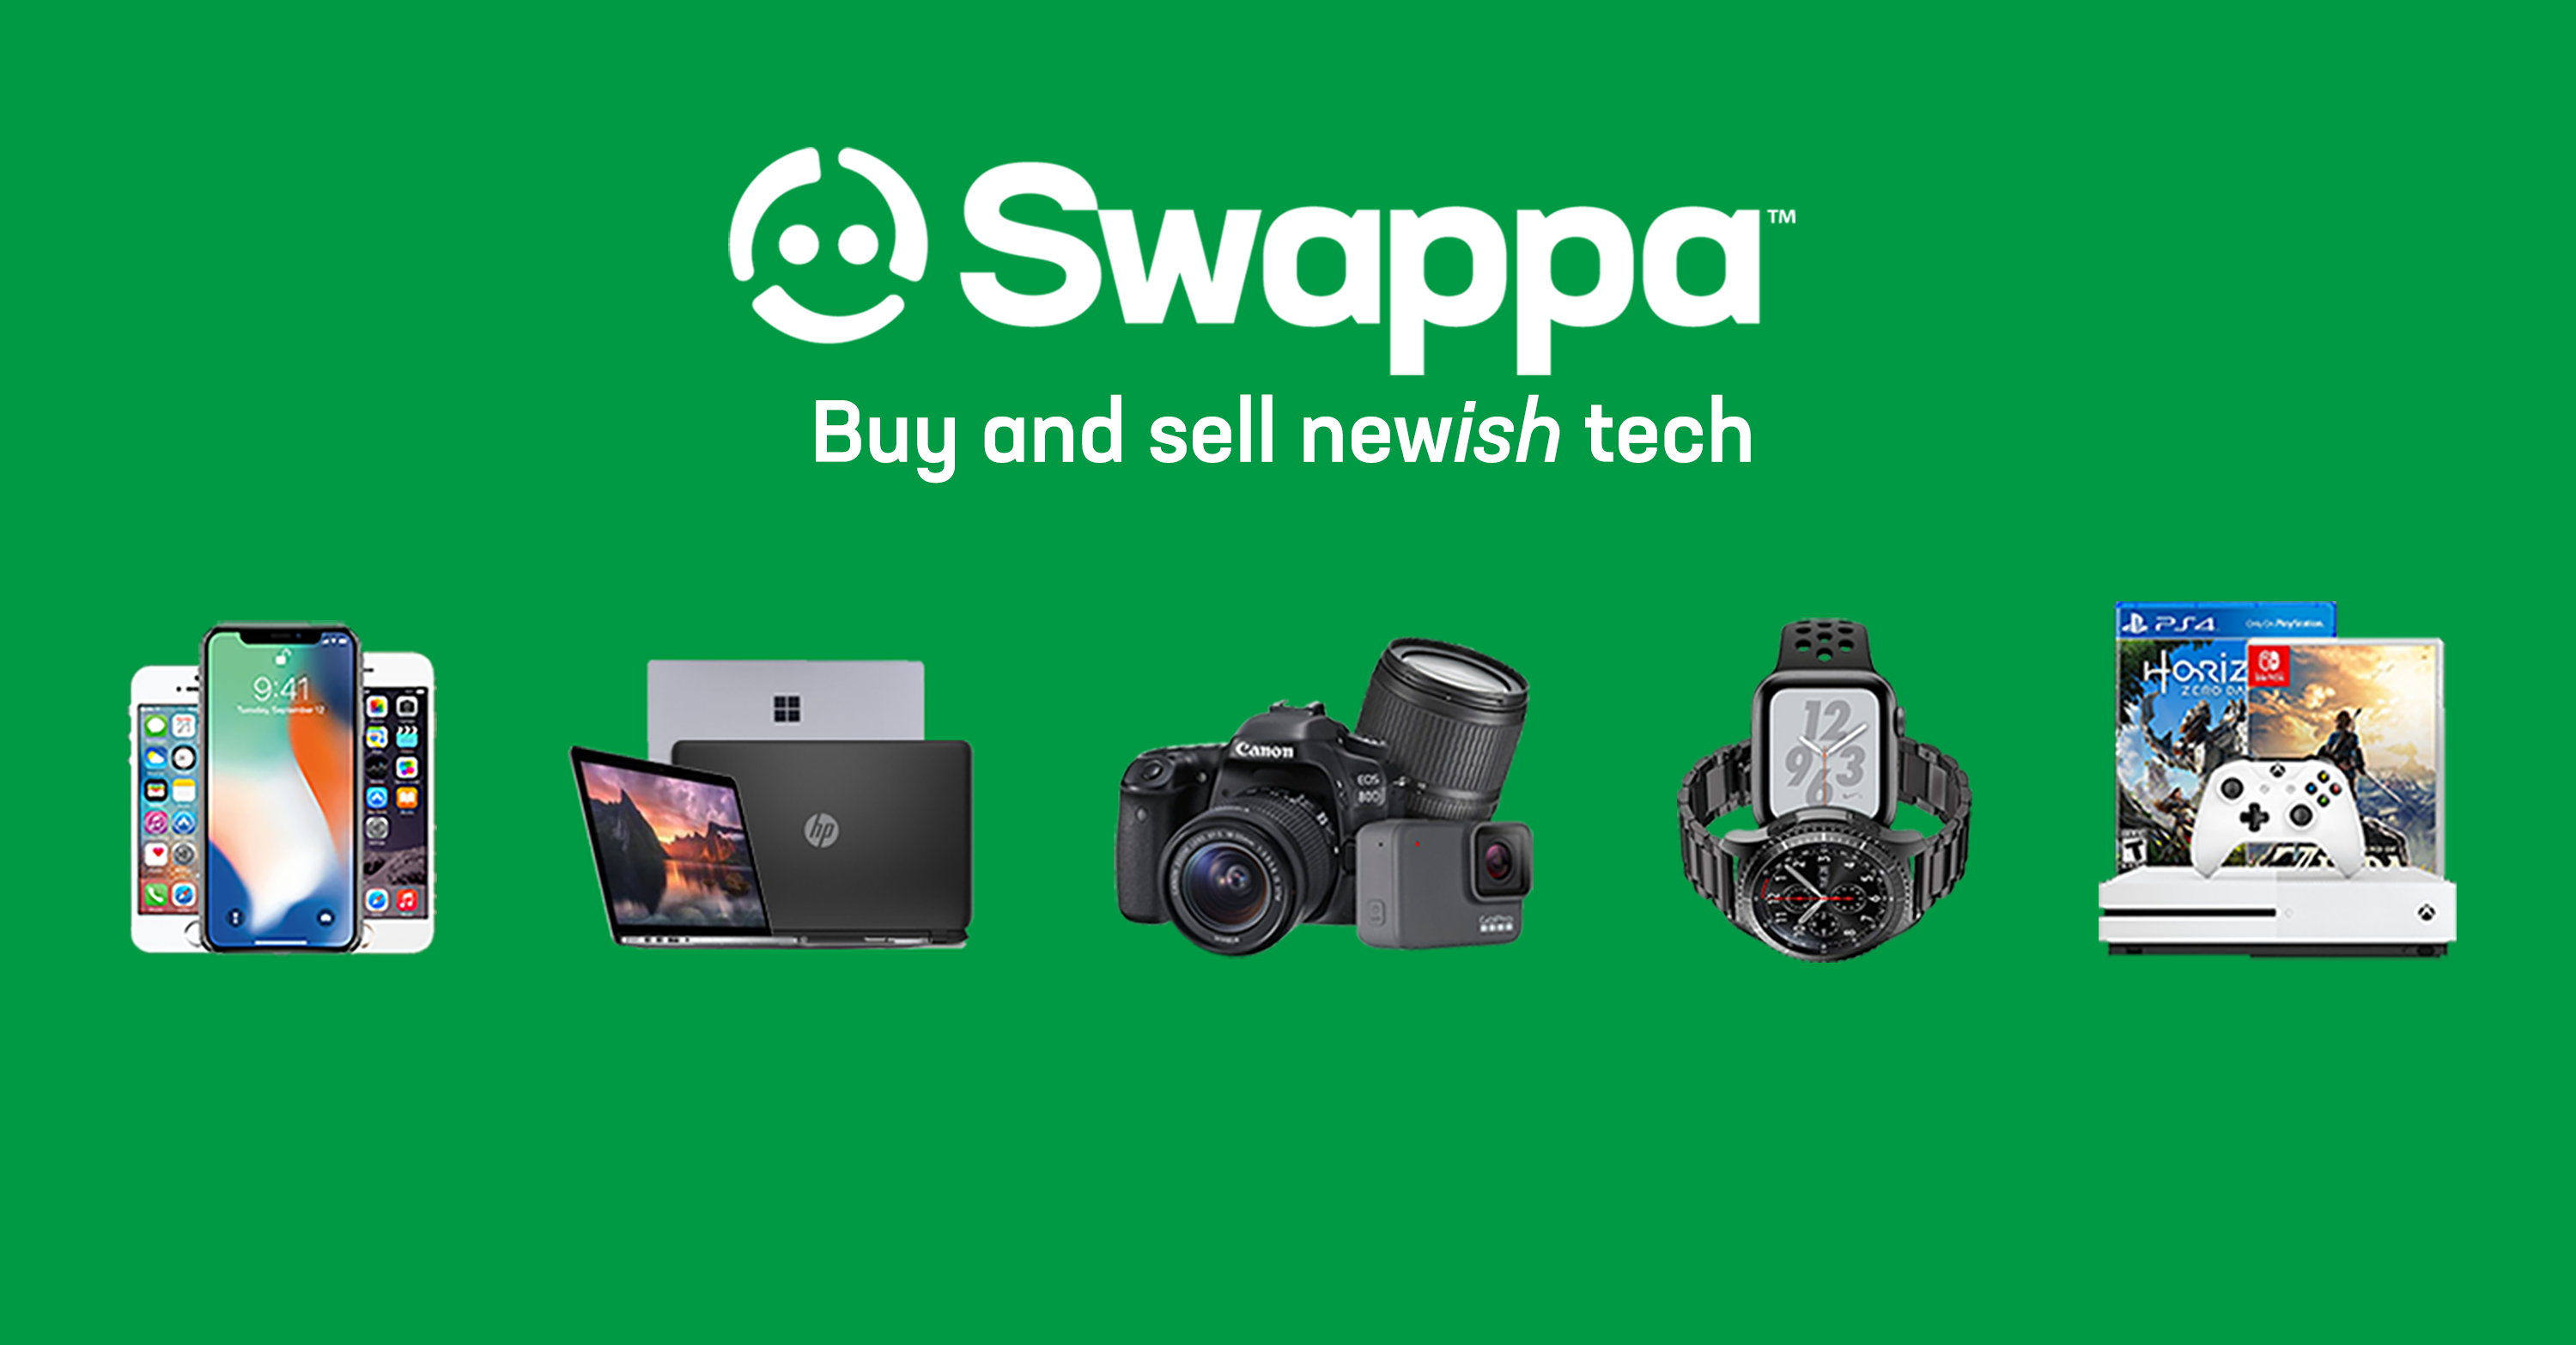 Swappa goods for cash